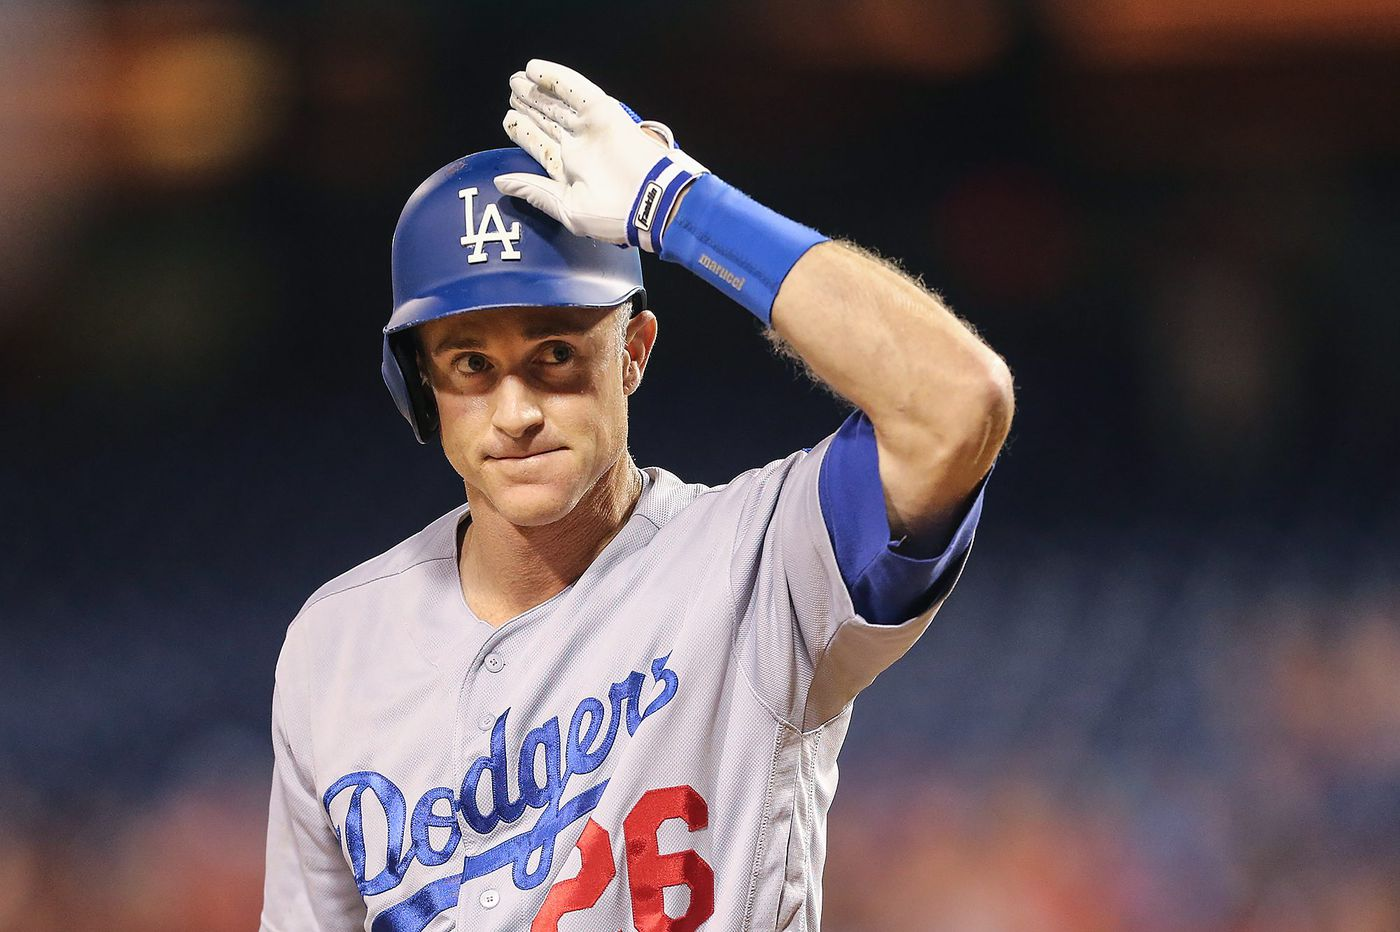 Rob McElhenney is jacked enough to get Chase Utley's attention now